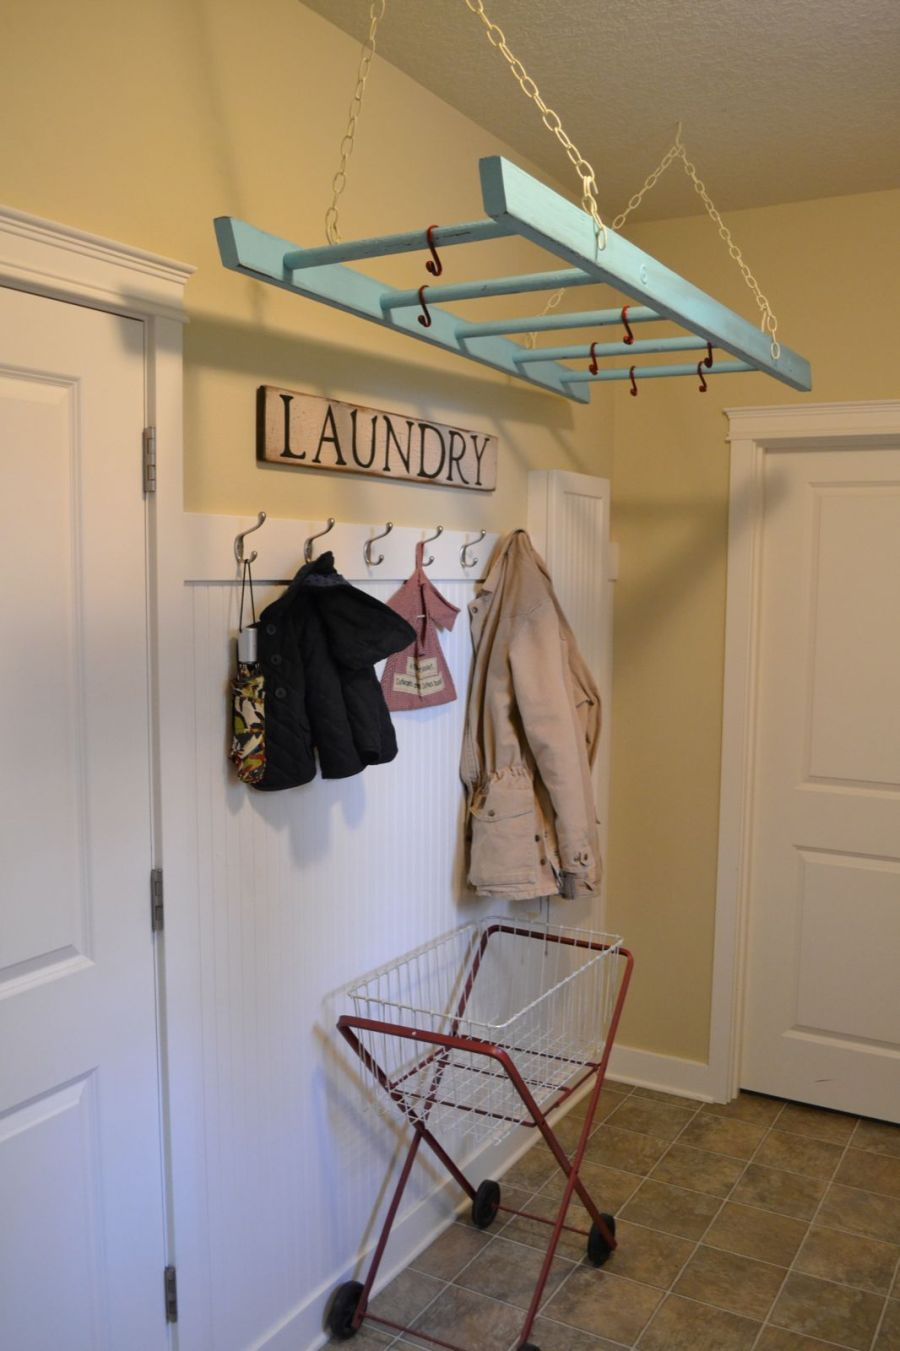 Original and Practical Laundry Designs